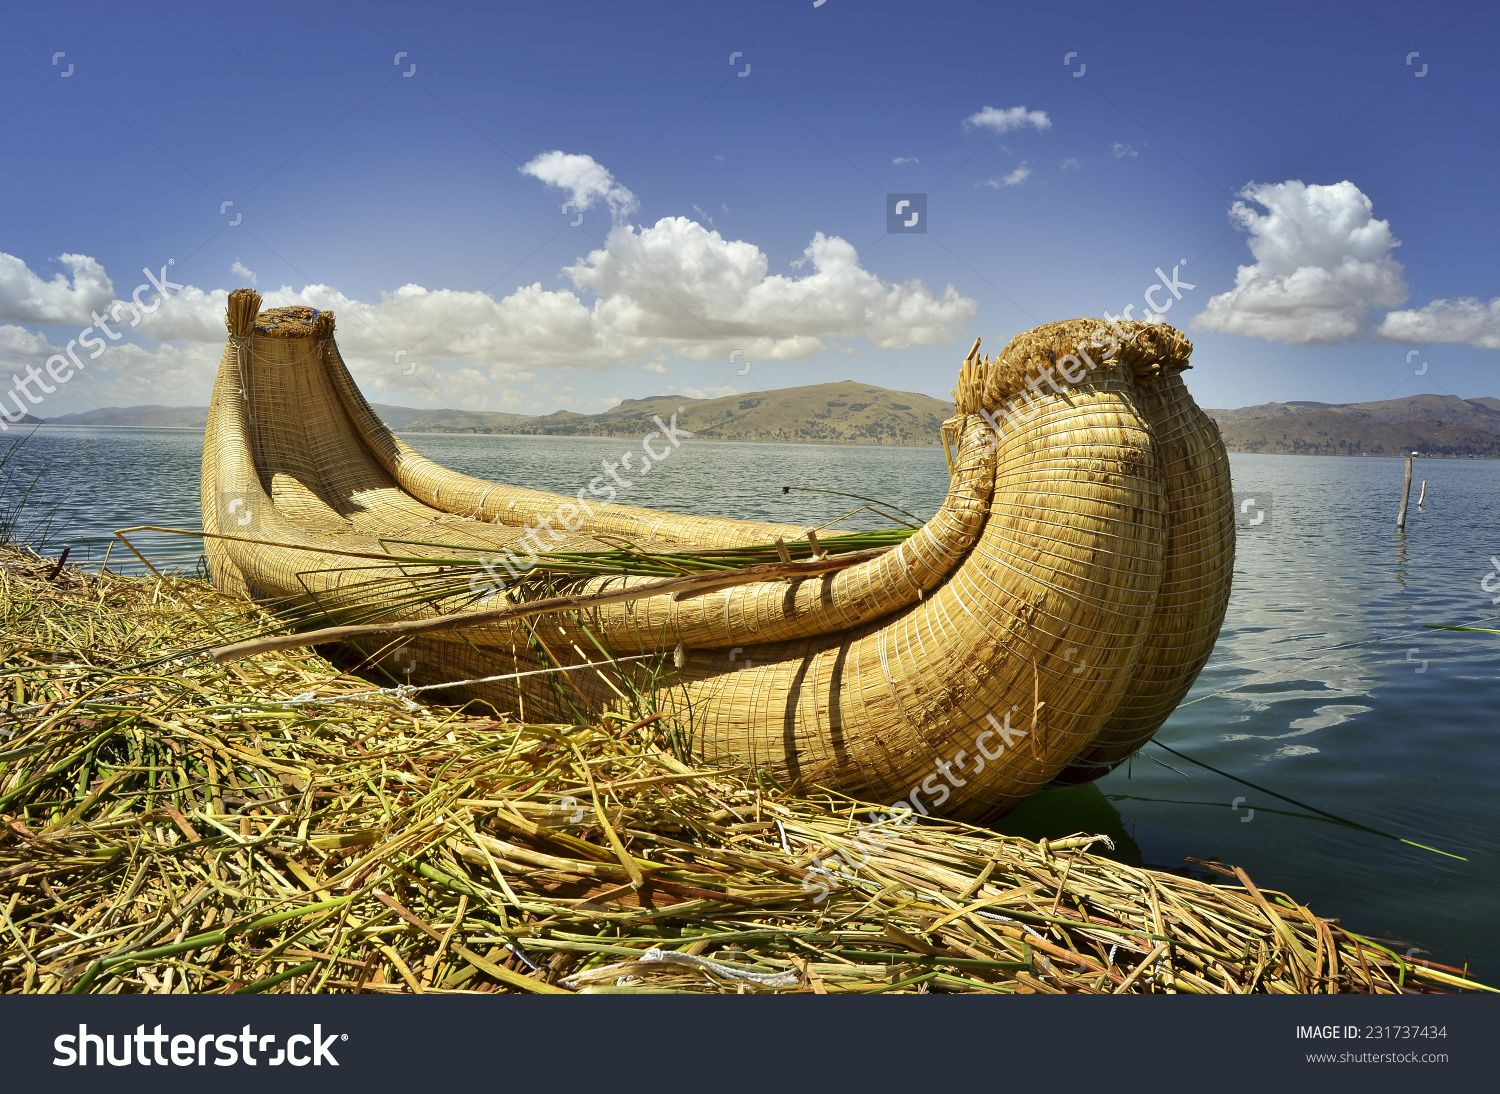 Uros Floatin Island On Lake Titicaca In Peru, Traditional Reed Boats Stock Photo 231737434 : Shutterstock